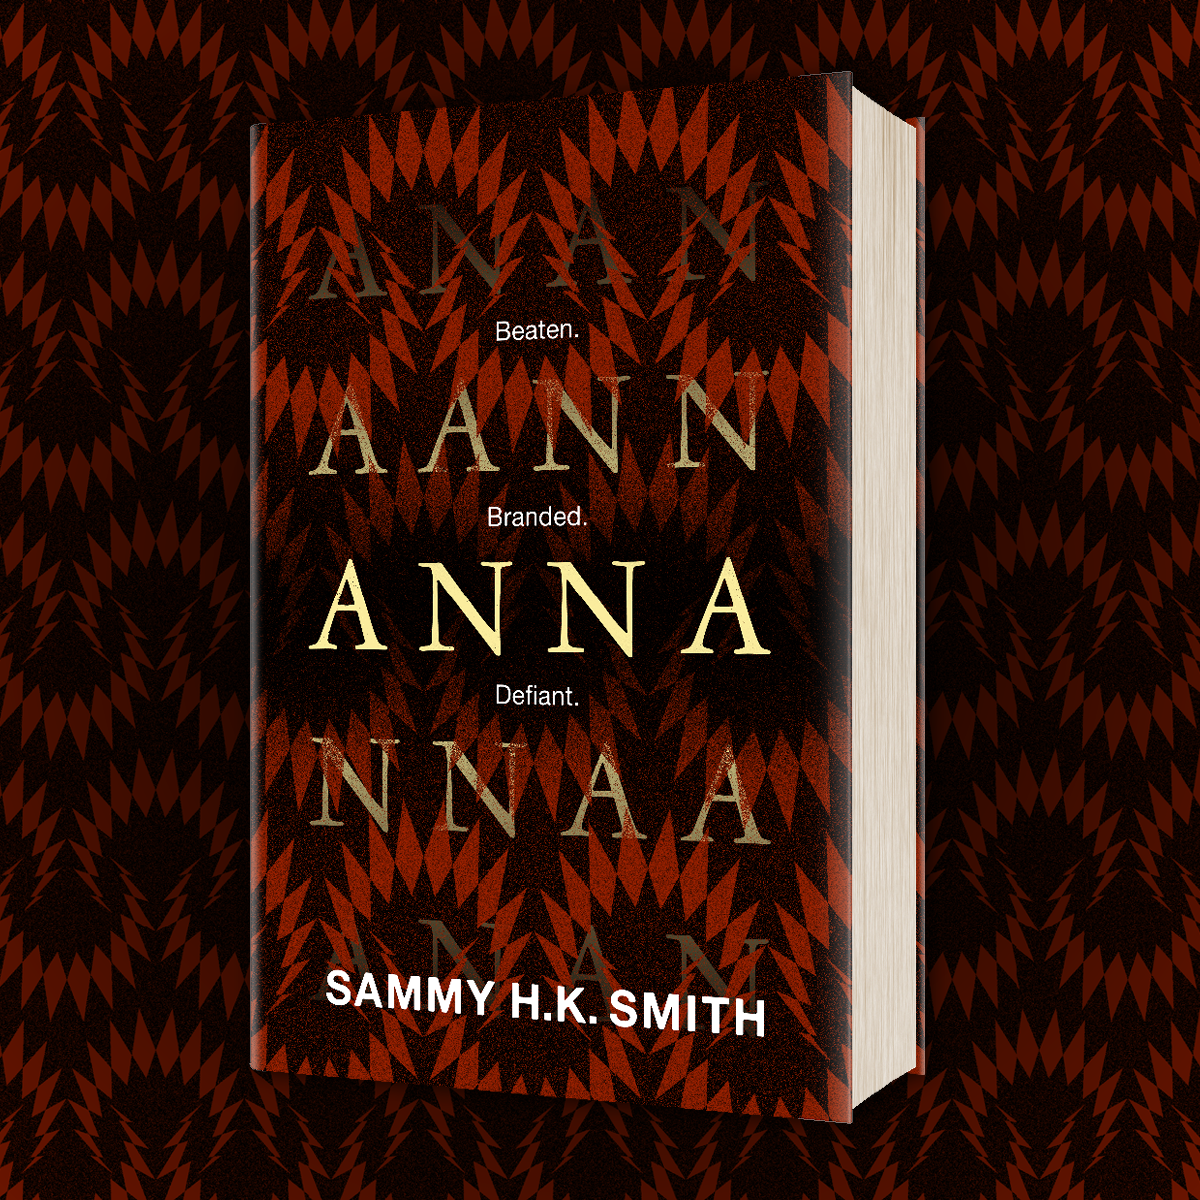 OUT NOW: Anna by Sammy H.K. Smith!